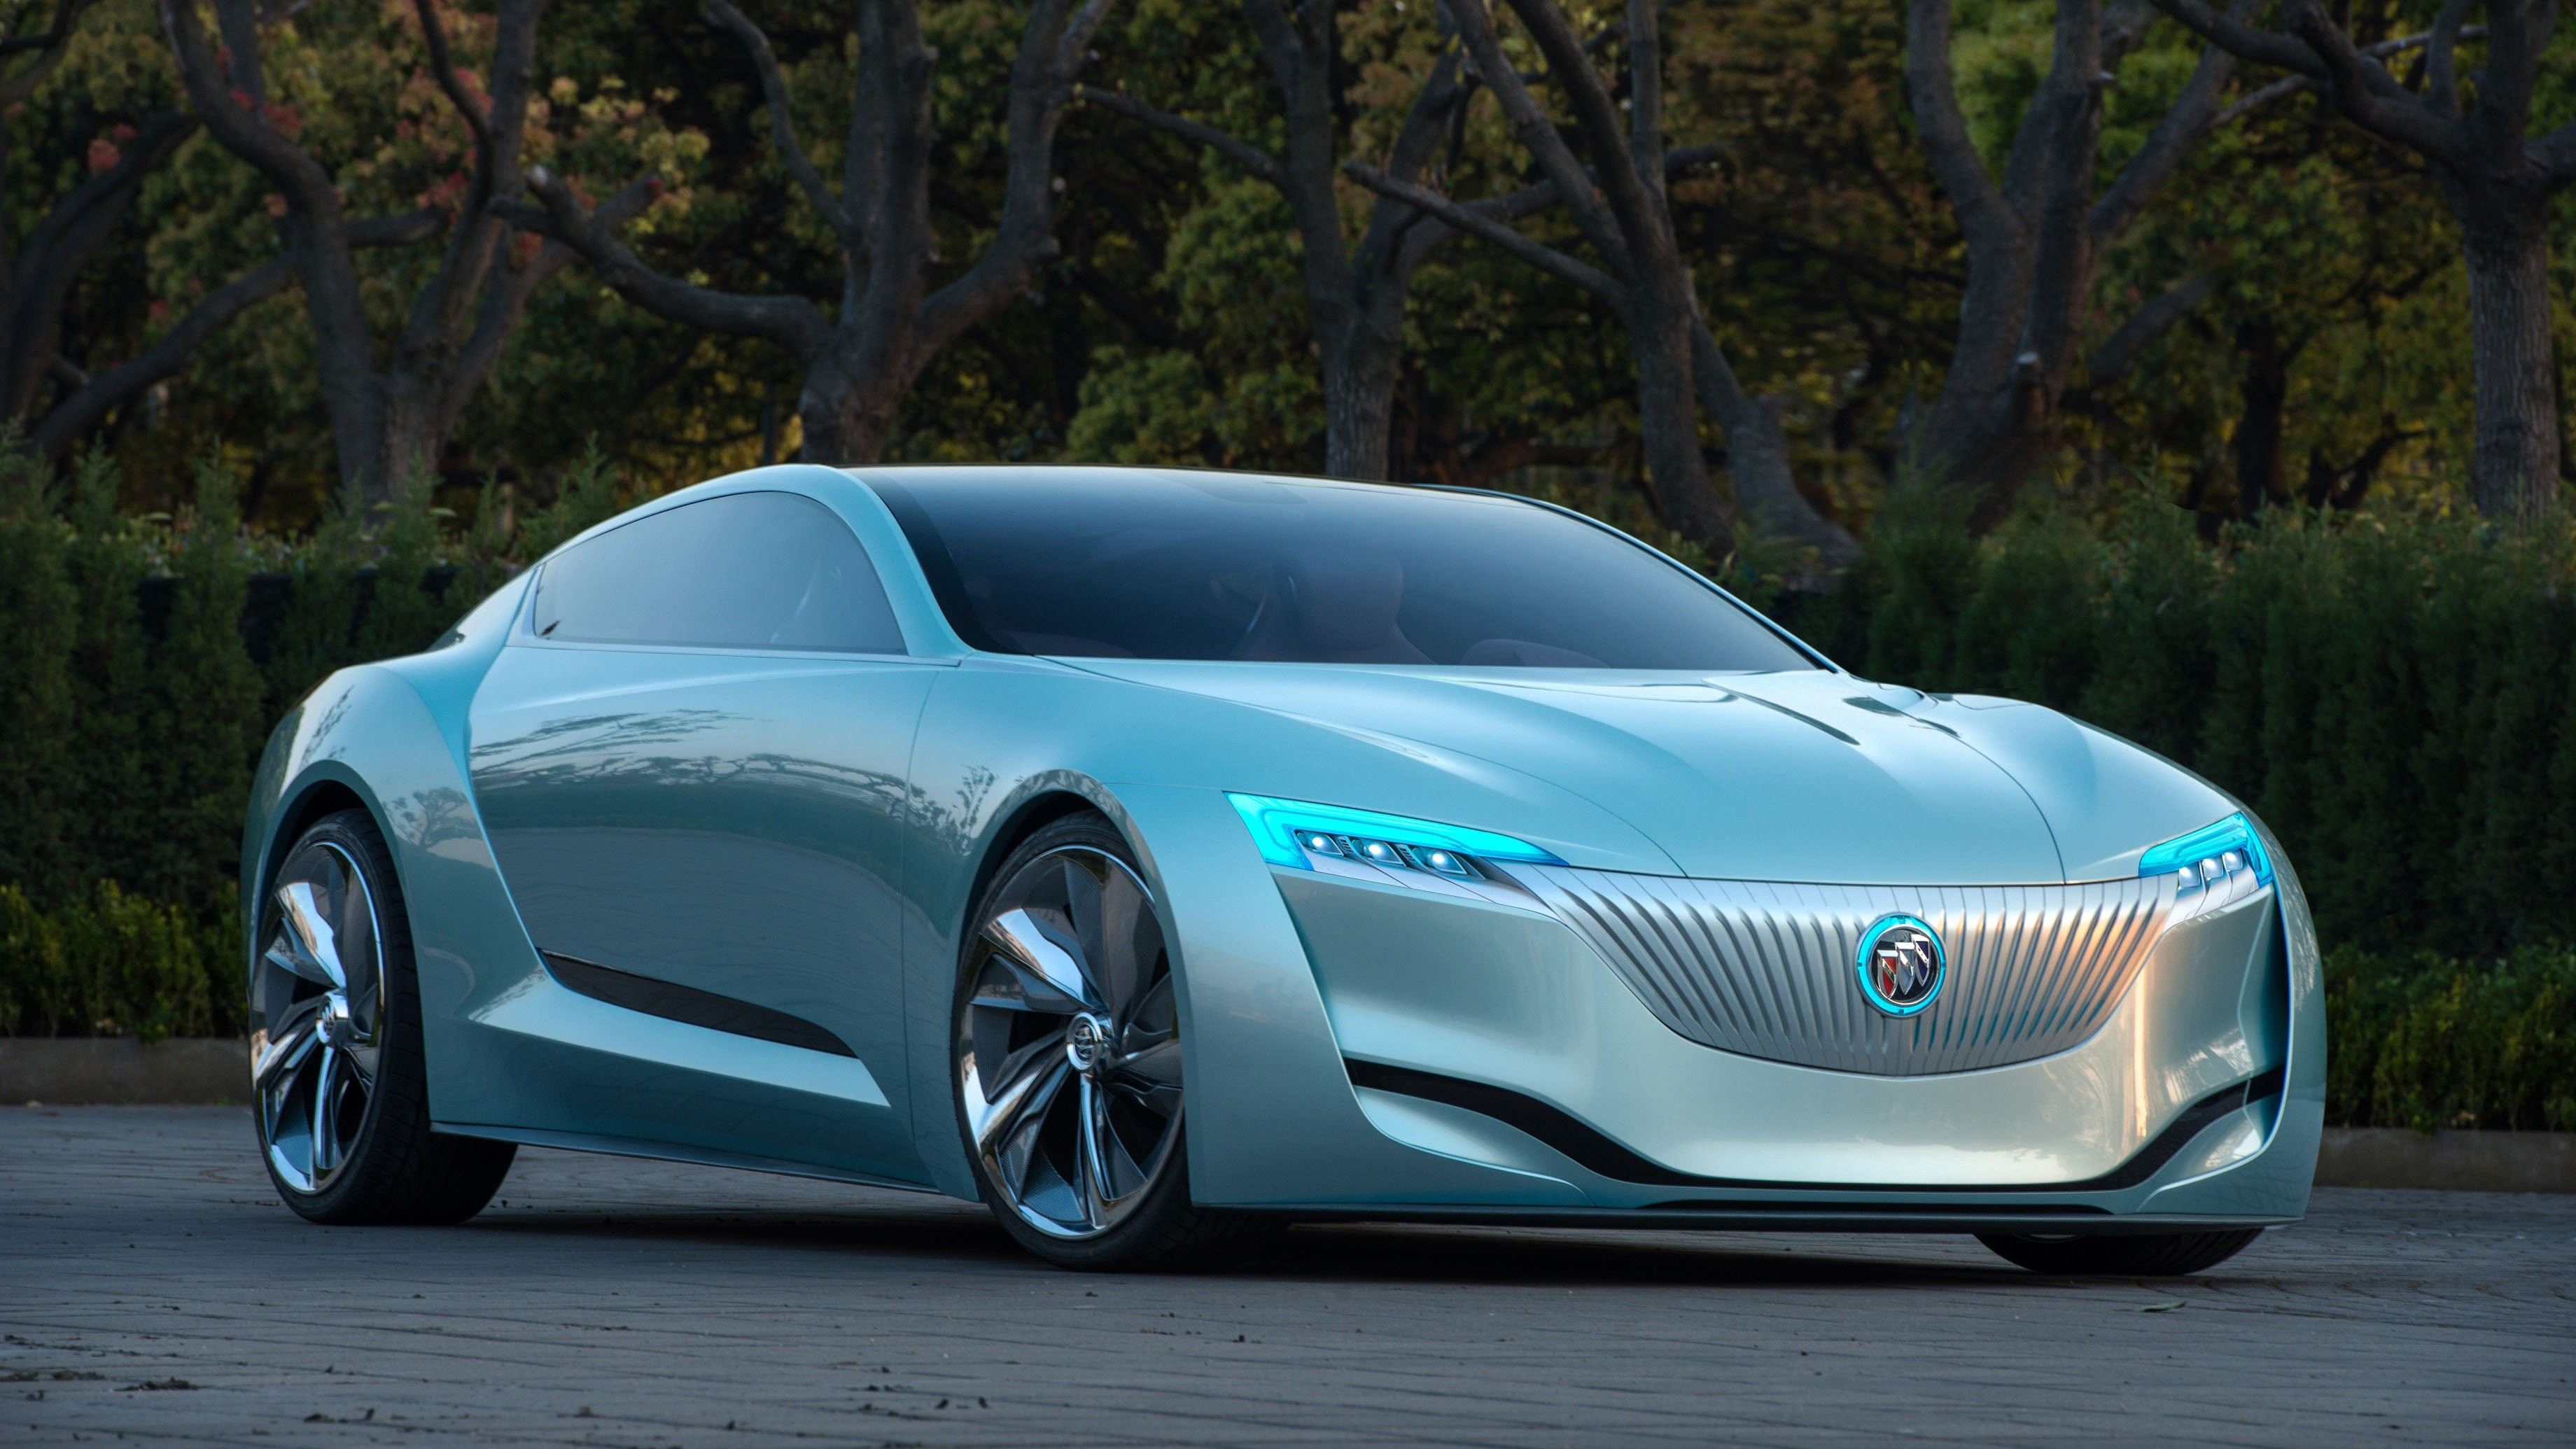 Wallpaper Buick Riviera Hybrid Electric Sedan 2016